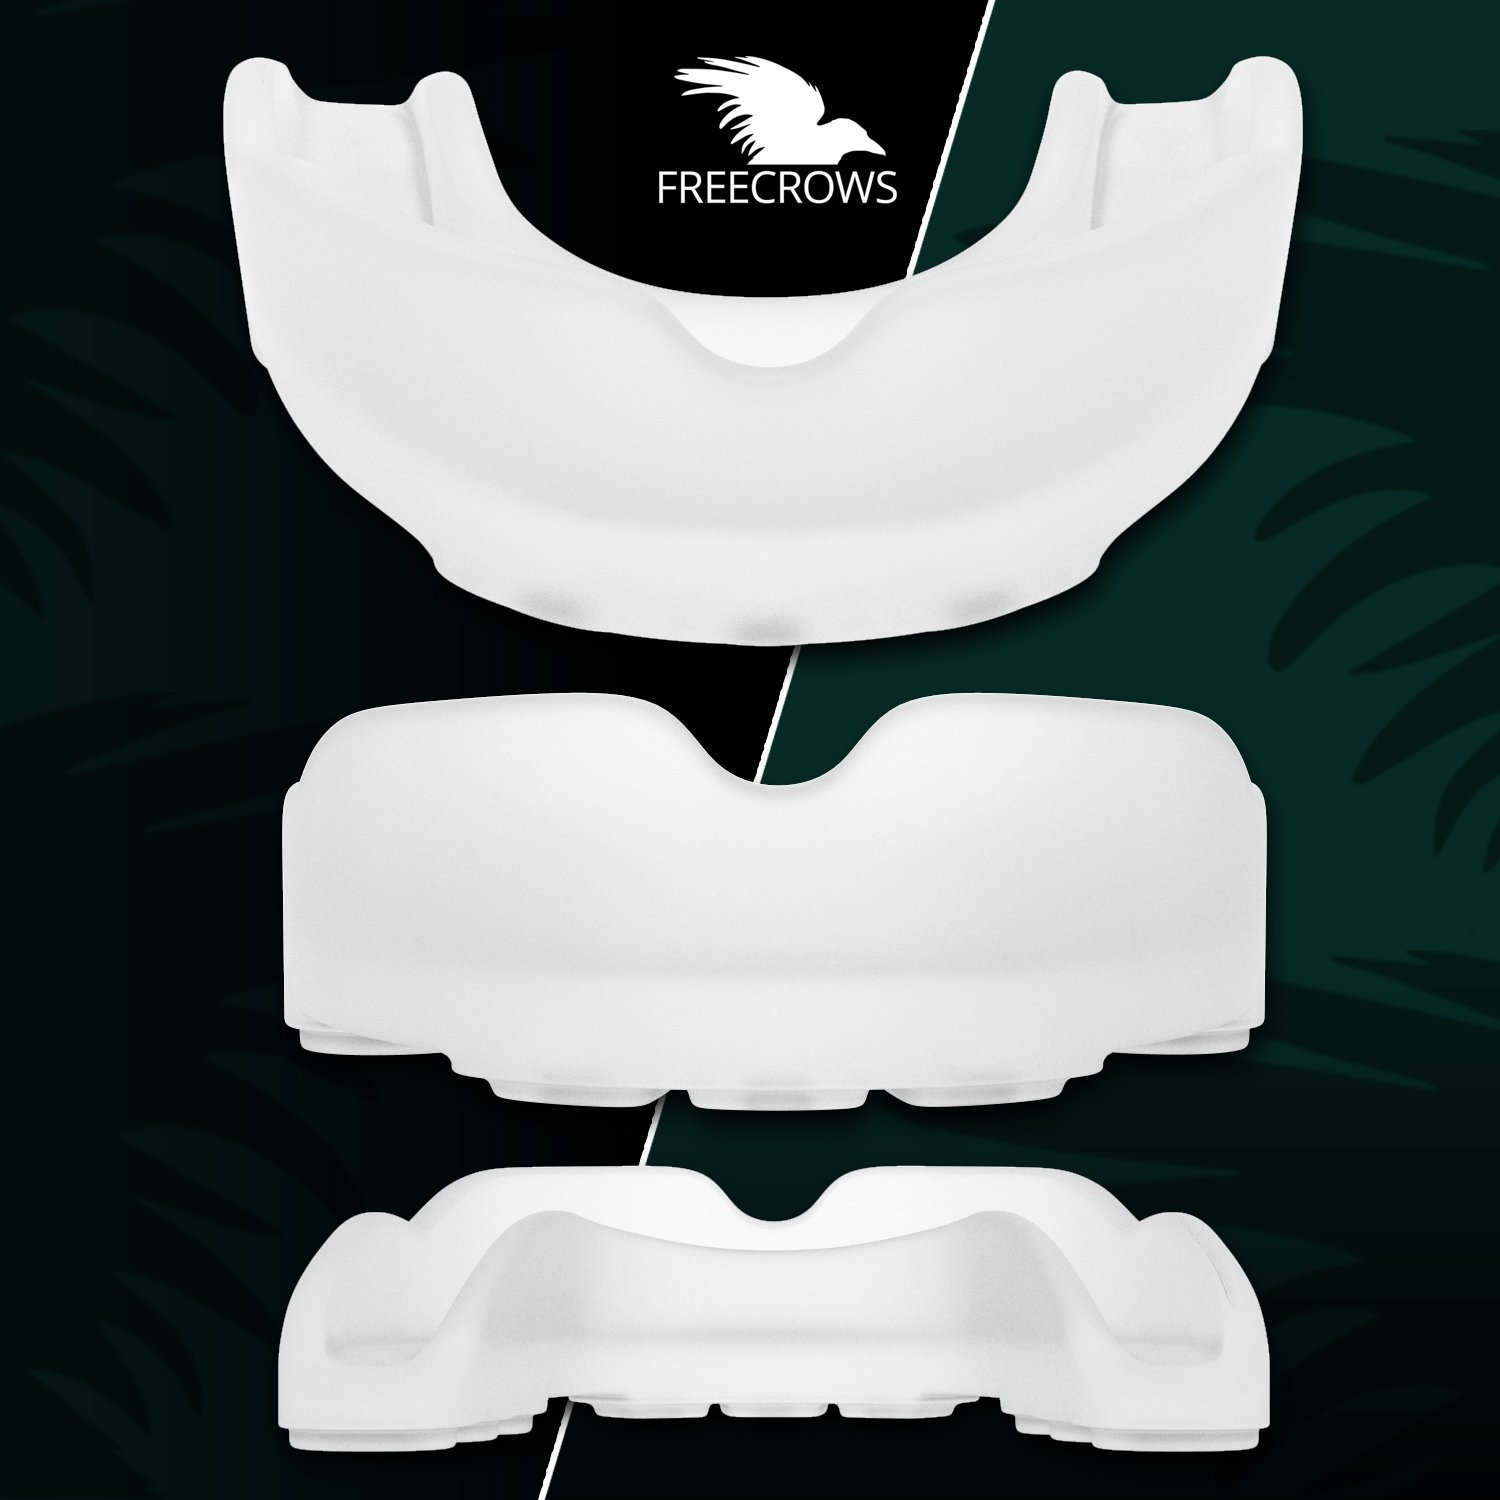 MMA Mouthguard / Adult Mouth Guard - 2x Gum Shield Teeth Protection for all Contact Sports and Game - UFC , Boxing , Taekwondo , Martial Arts , etc.- Two Mouthguards for Women and Men by Freecrows by FREECROWS (Image #4)